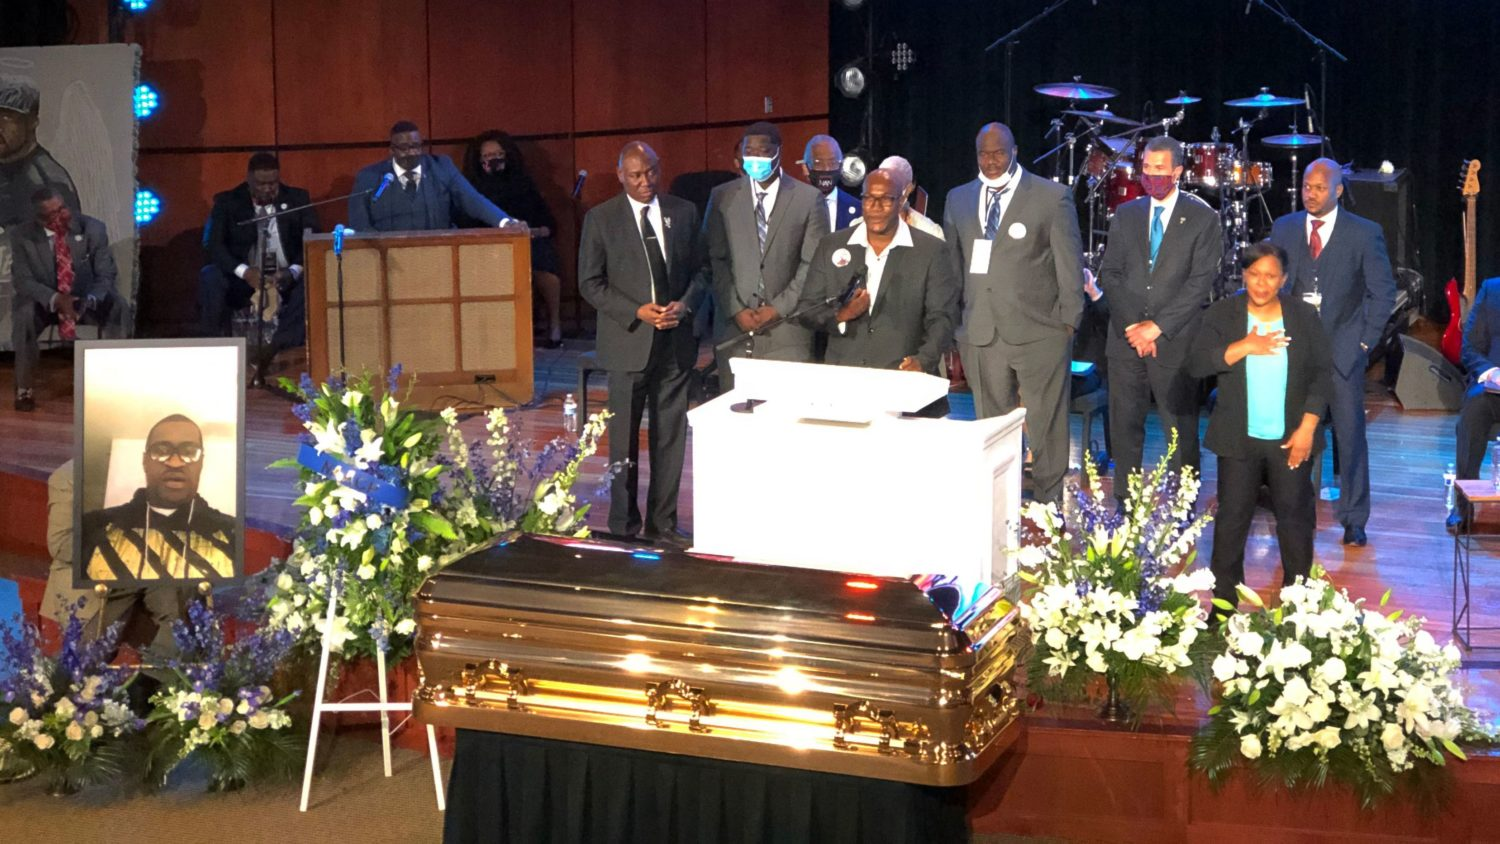 Hundreds Gathered At Memorial For George Floyd After Days Of Nationwide Protests Wamu